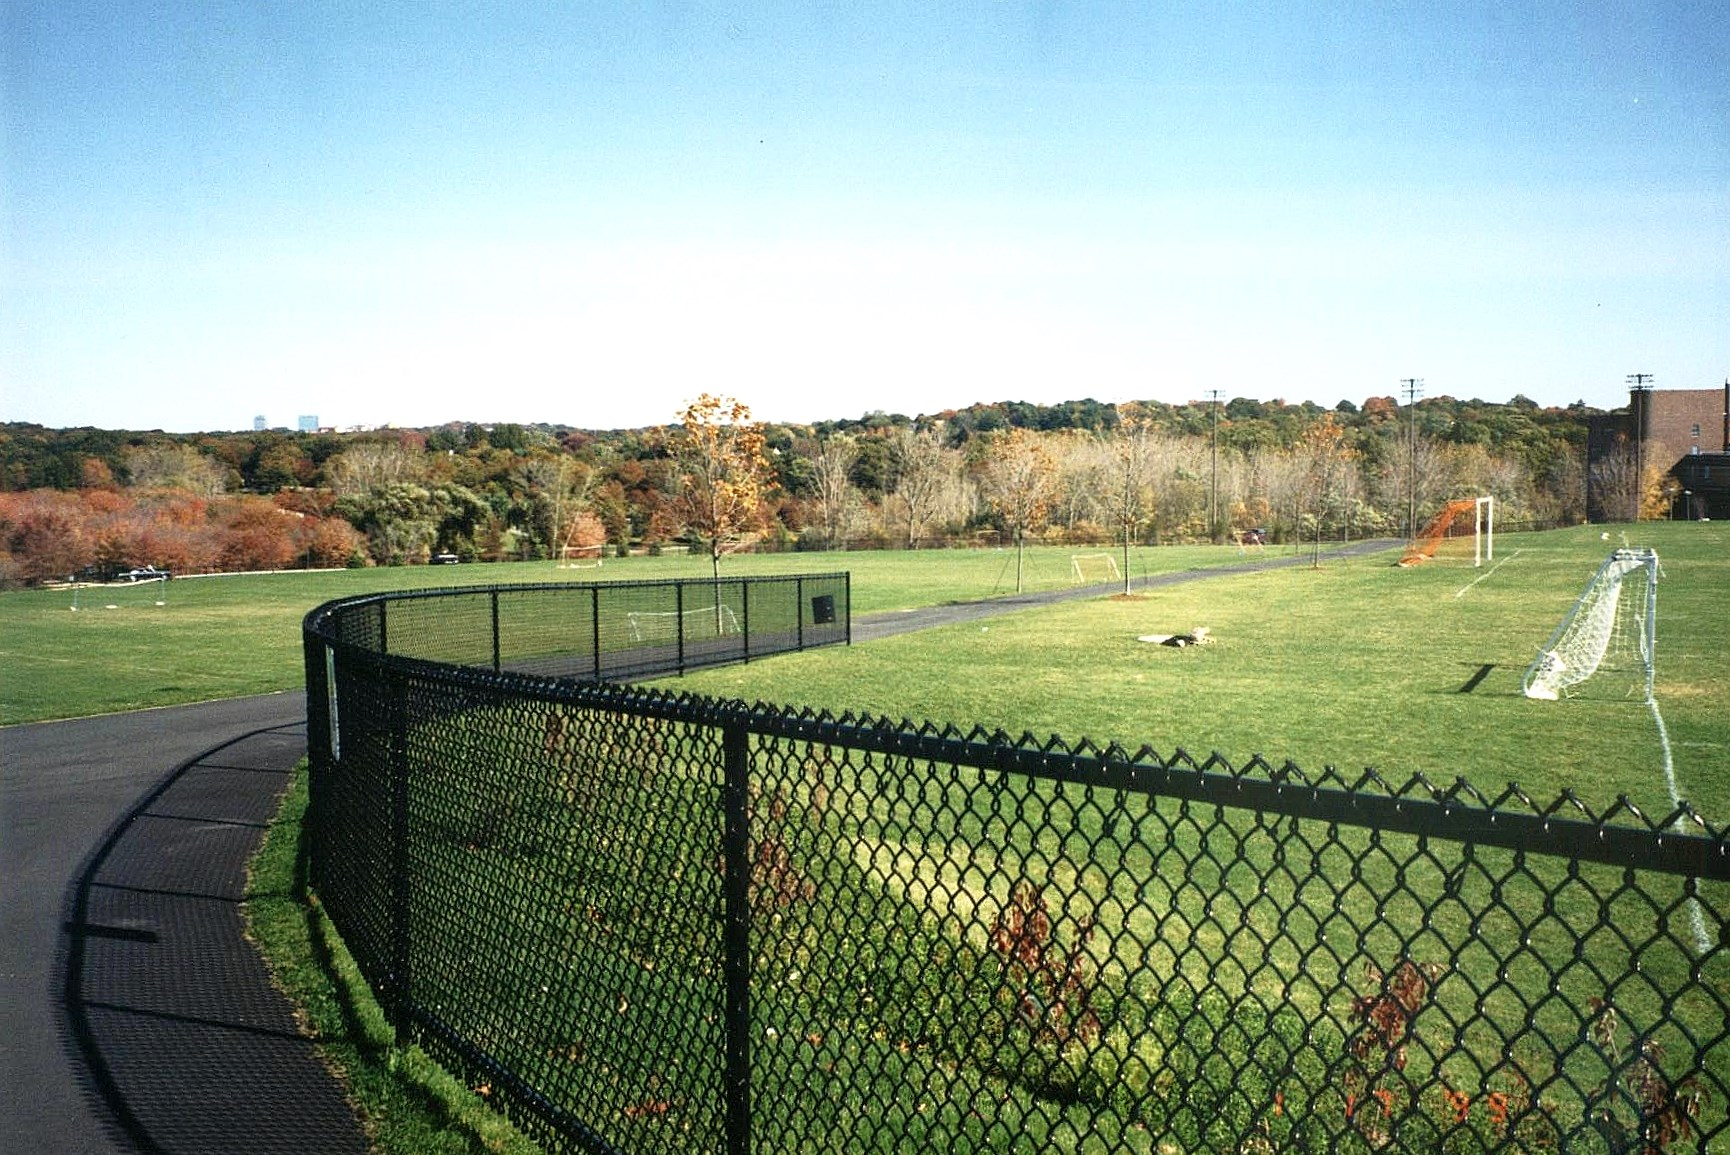 Typical Ball Field Fence